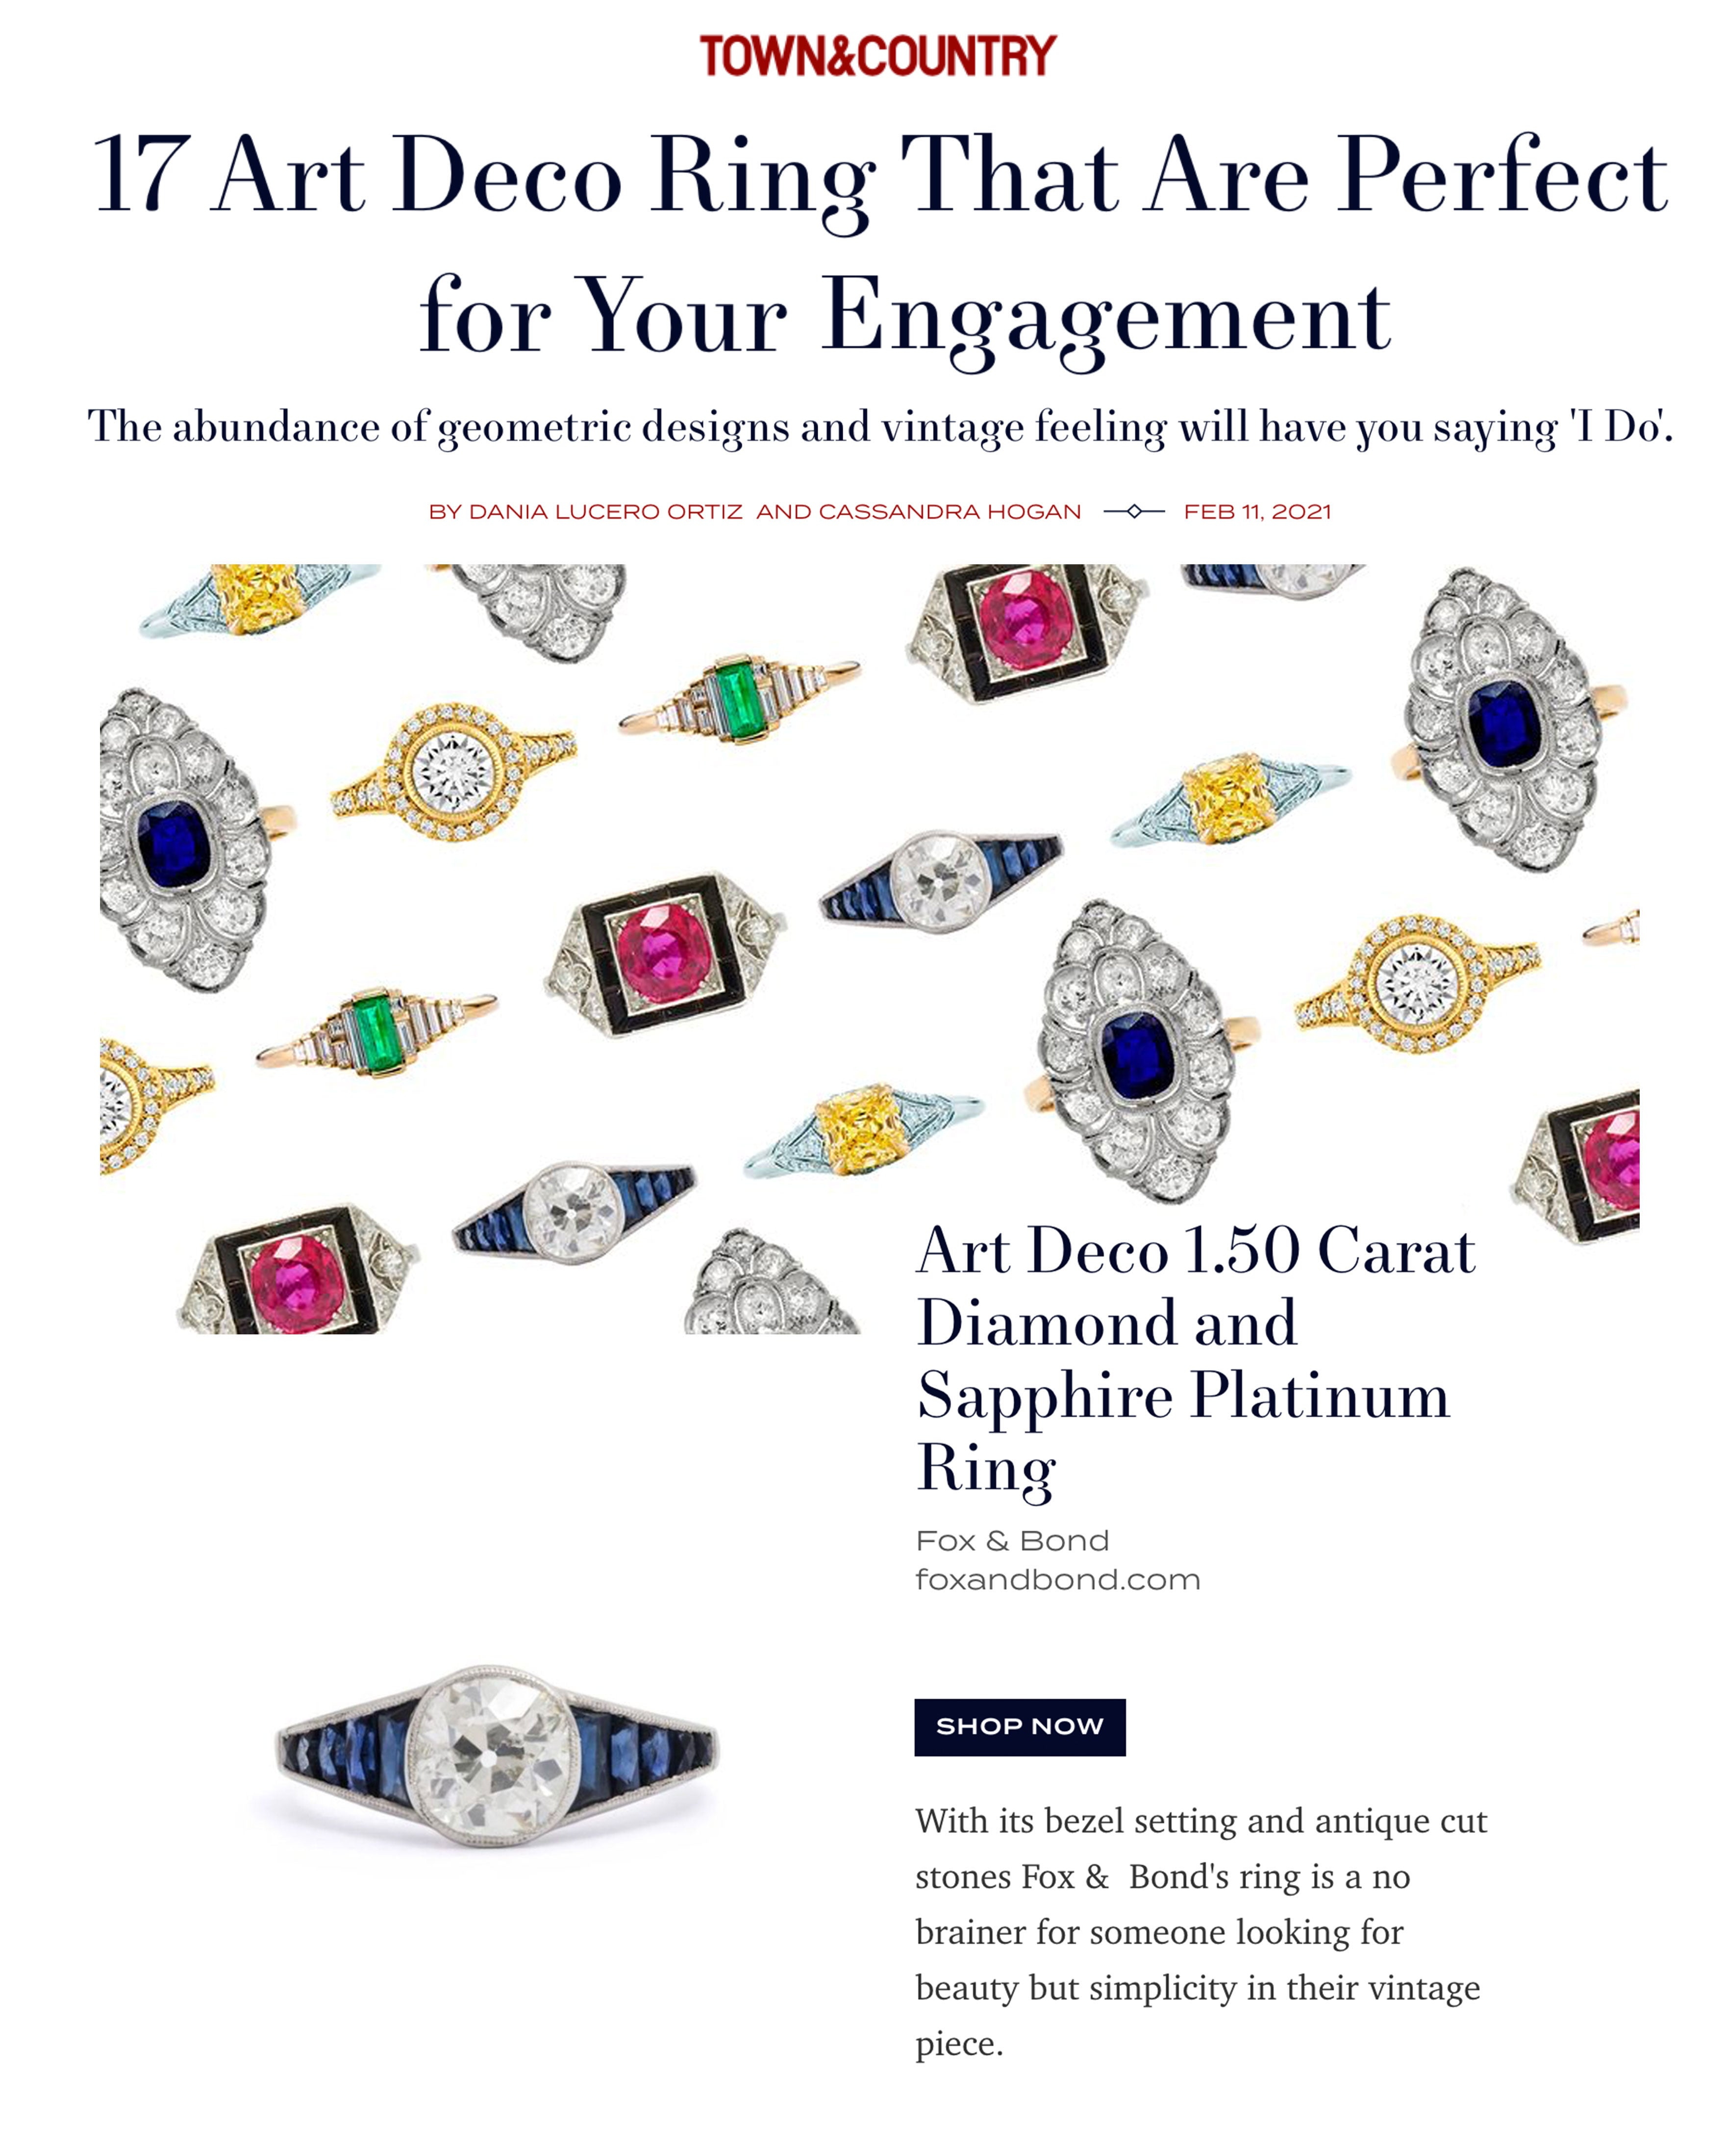 Town & Country: 17 Art Deco Ring That Are Perfect for Your Engagement